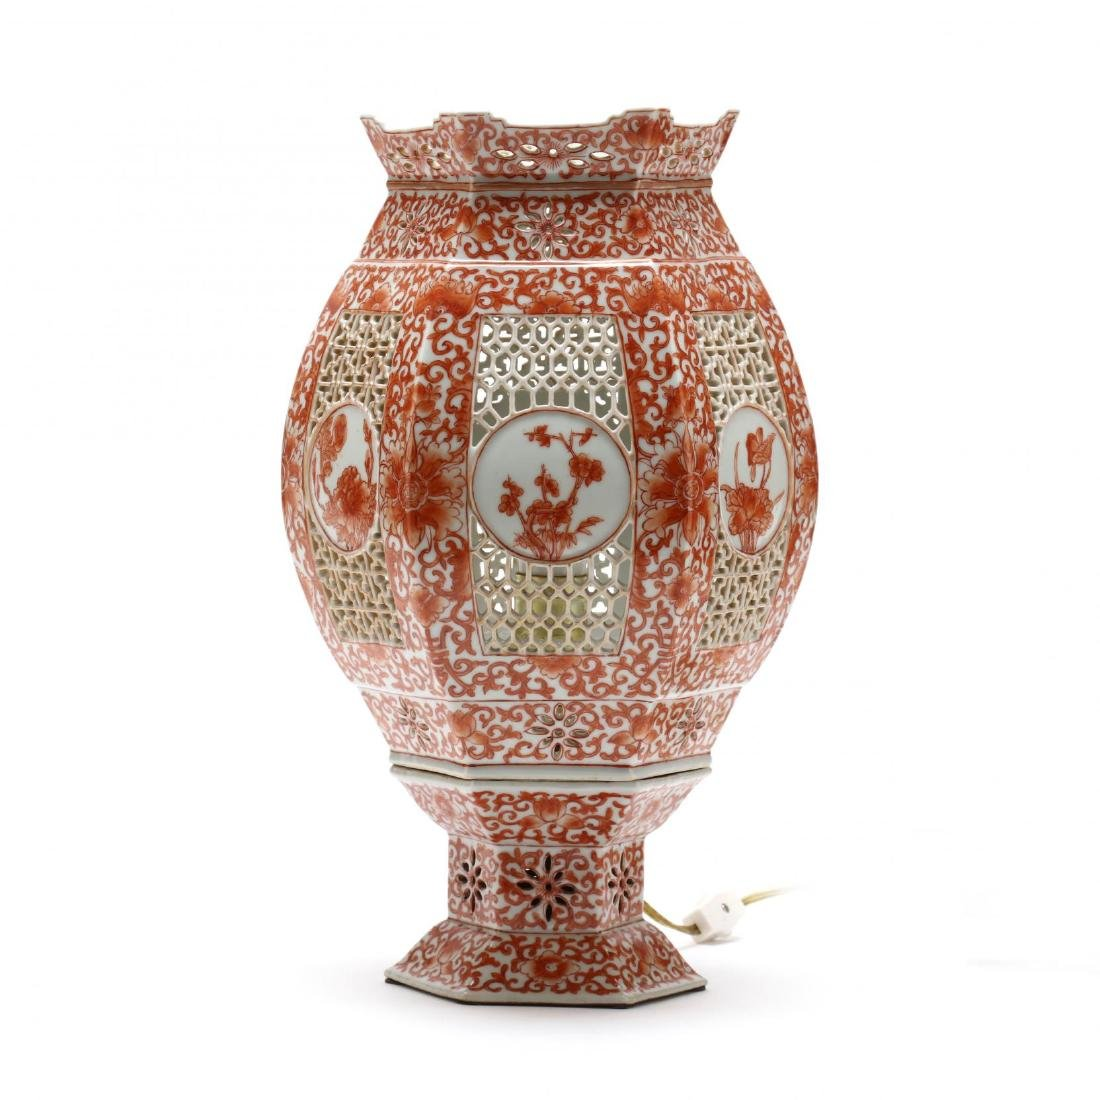 A Chinese Iron Red on White Ground Porcelain Lamp